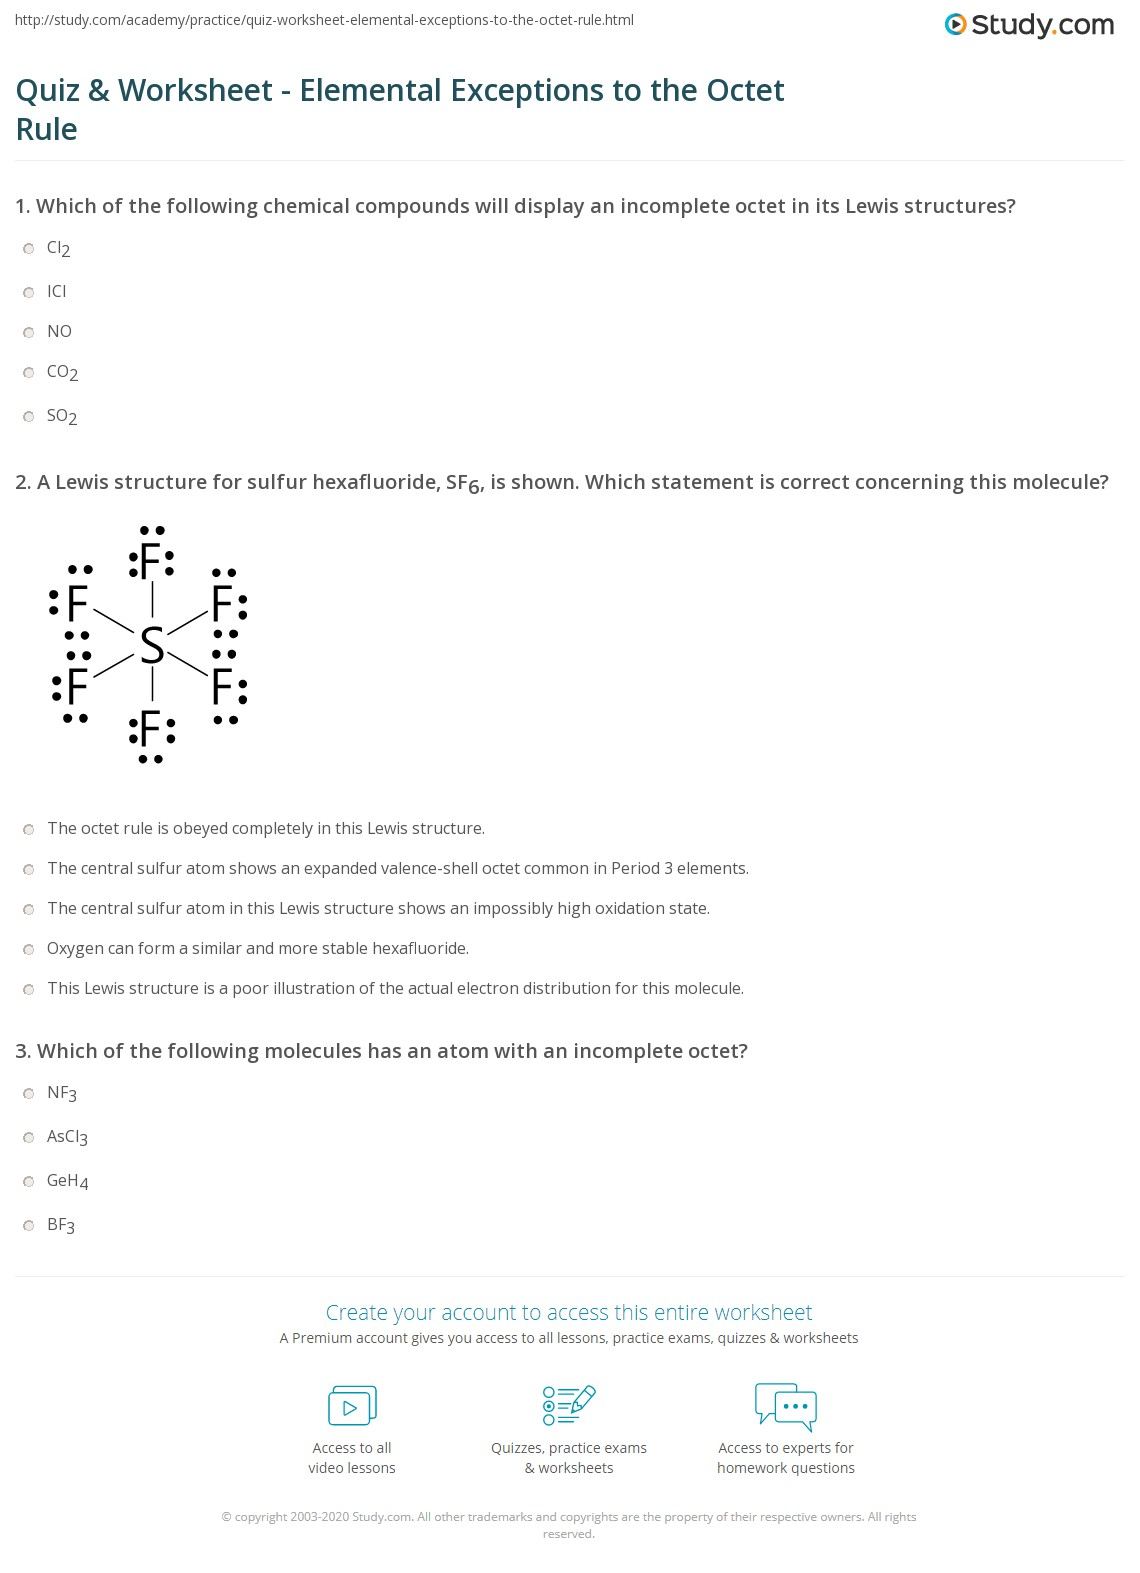 Quiz & Worksheet - Elemental Exceptions to the Octet Rule  Study.com Intended For Lewis Structure Practice Worksheet